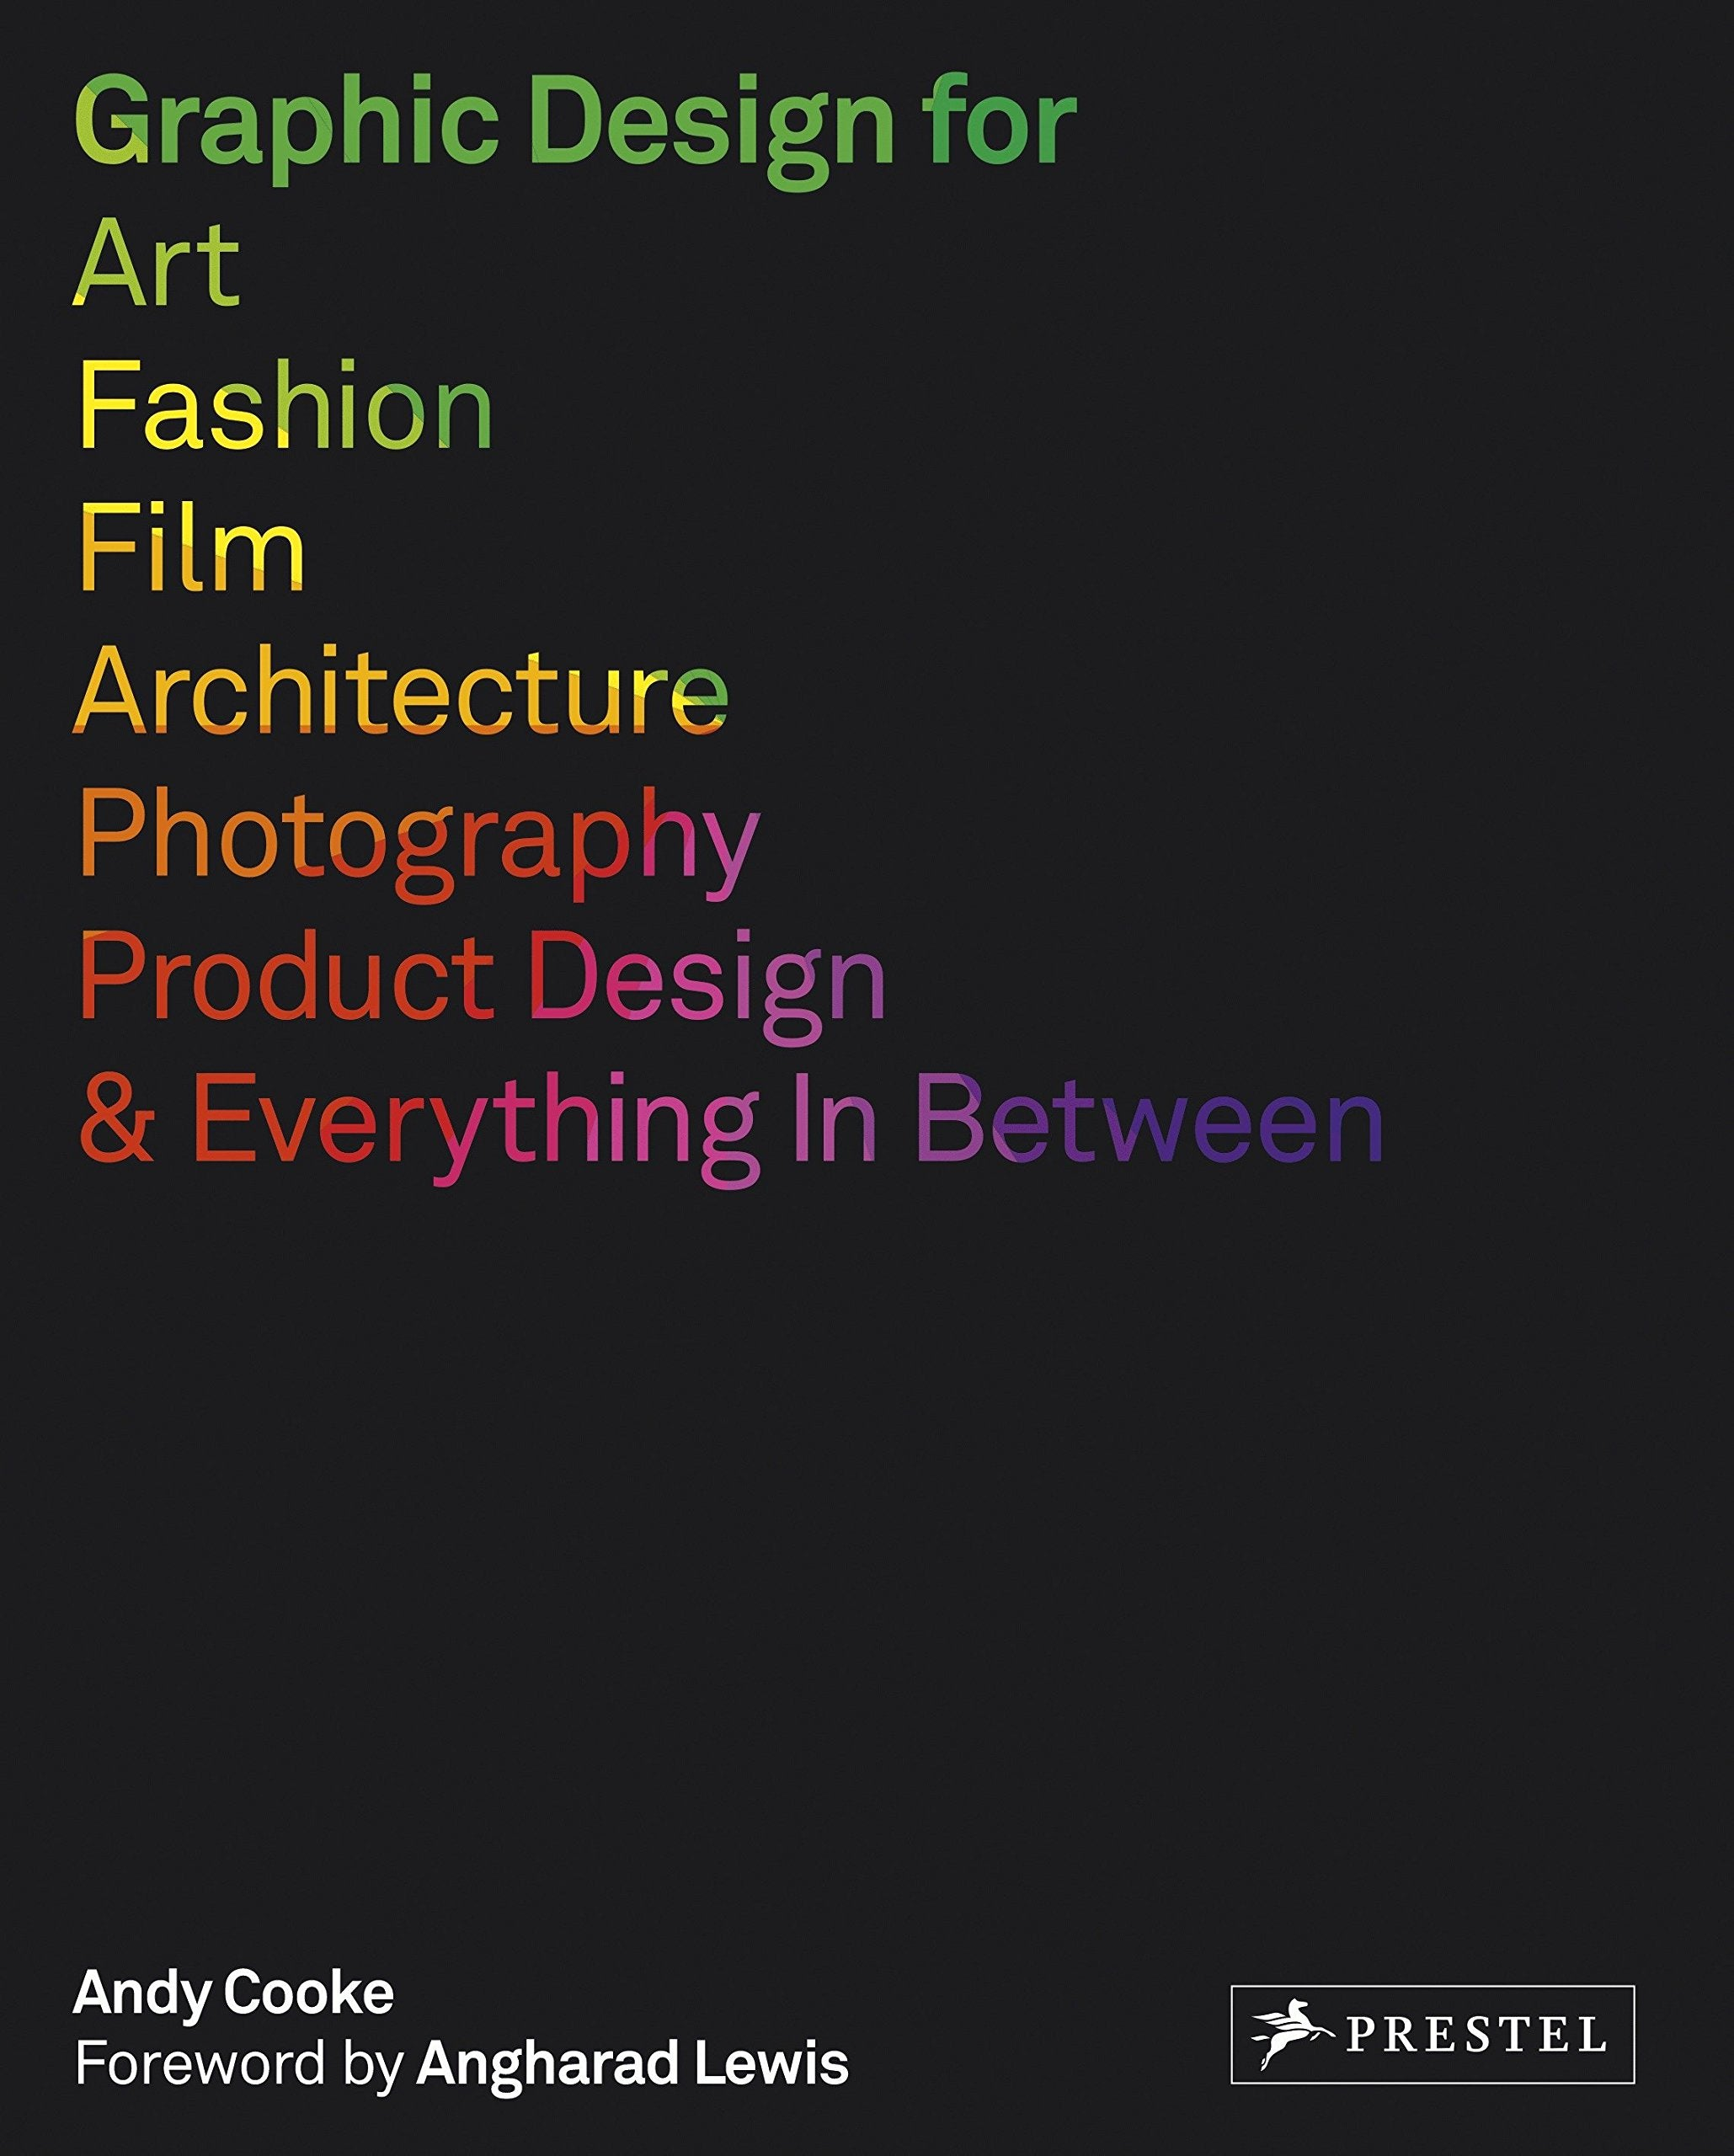 Graphic Design: For Art, Fashion, Film